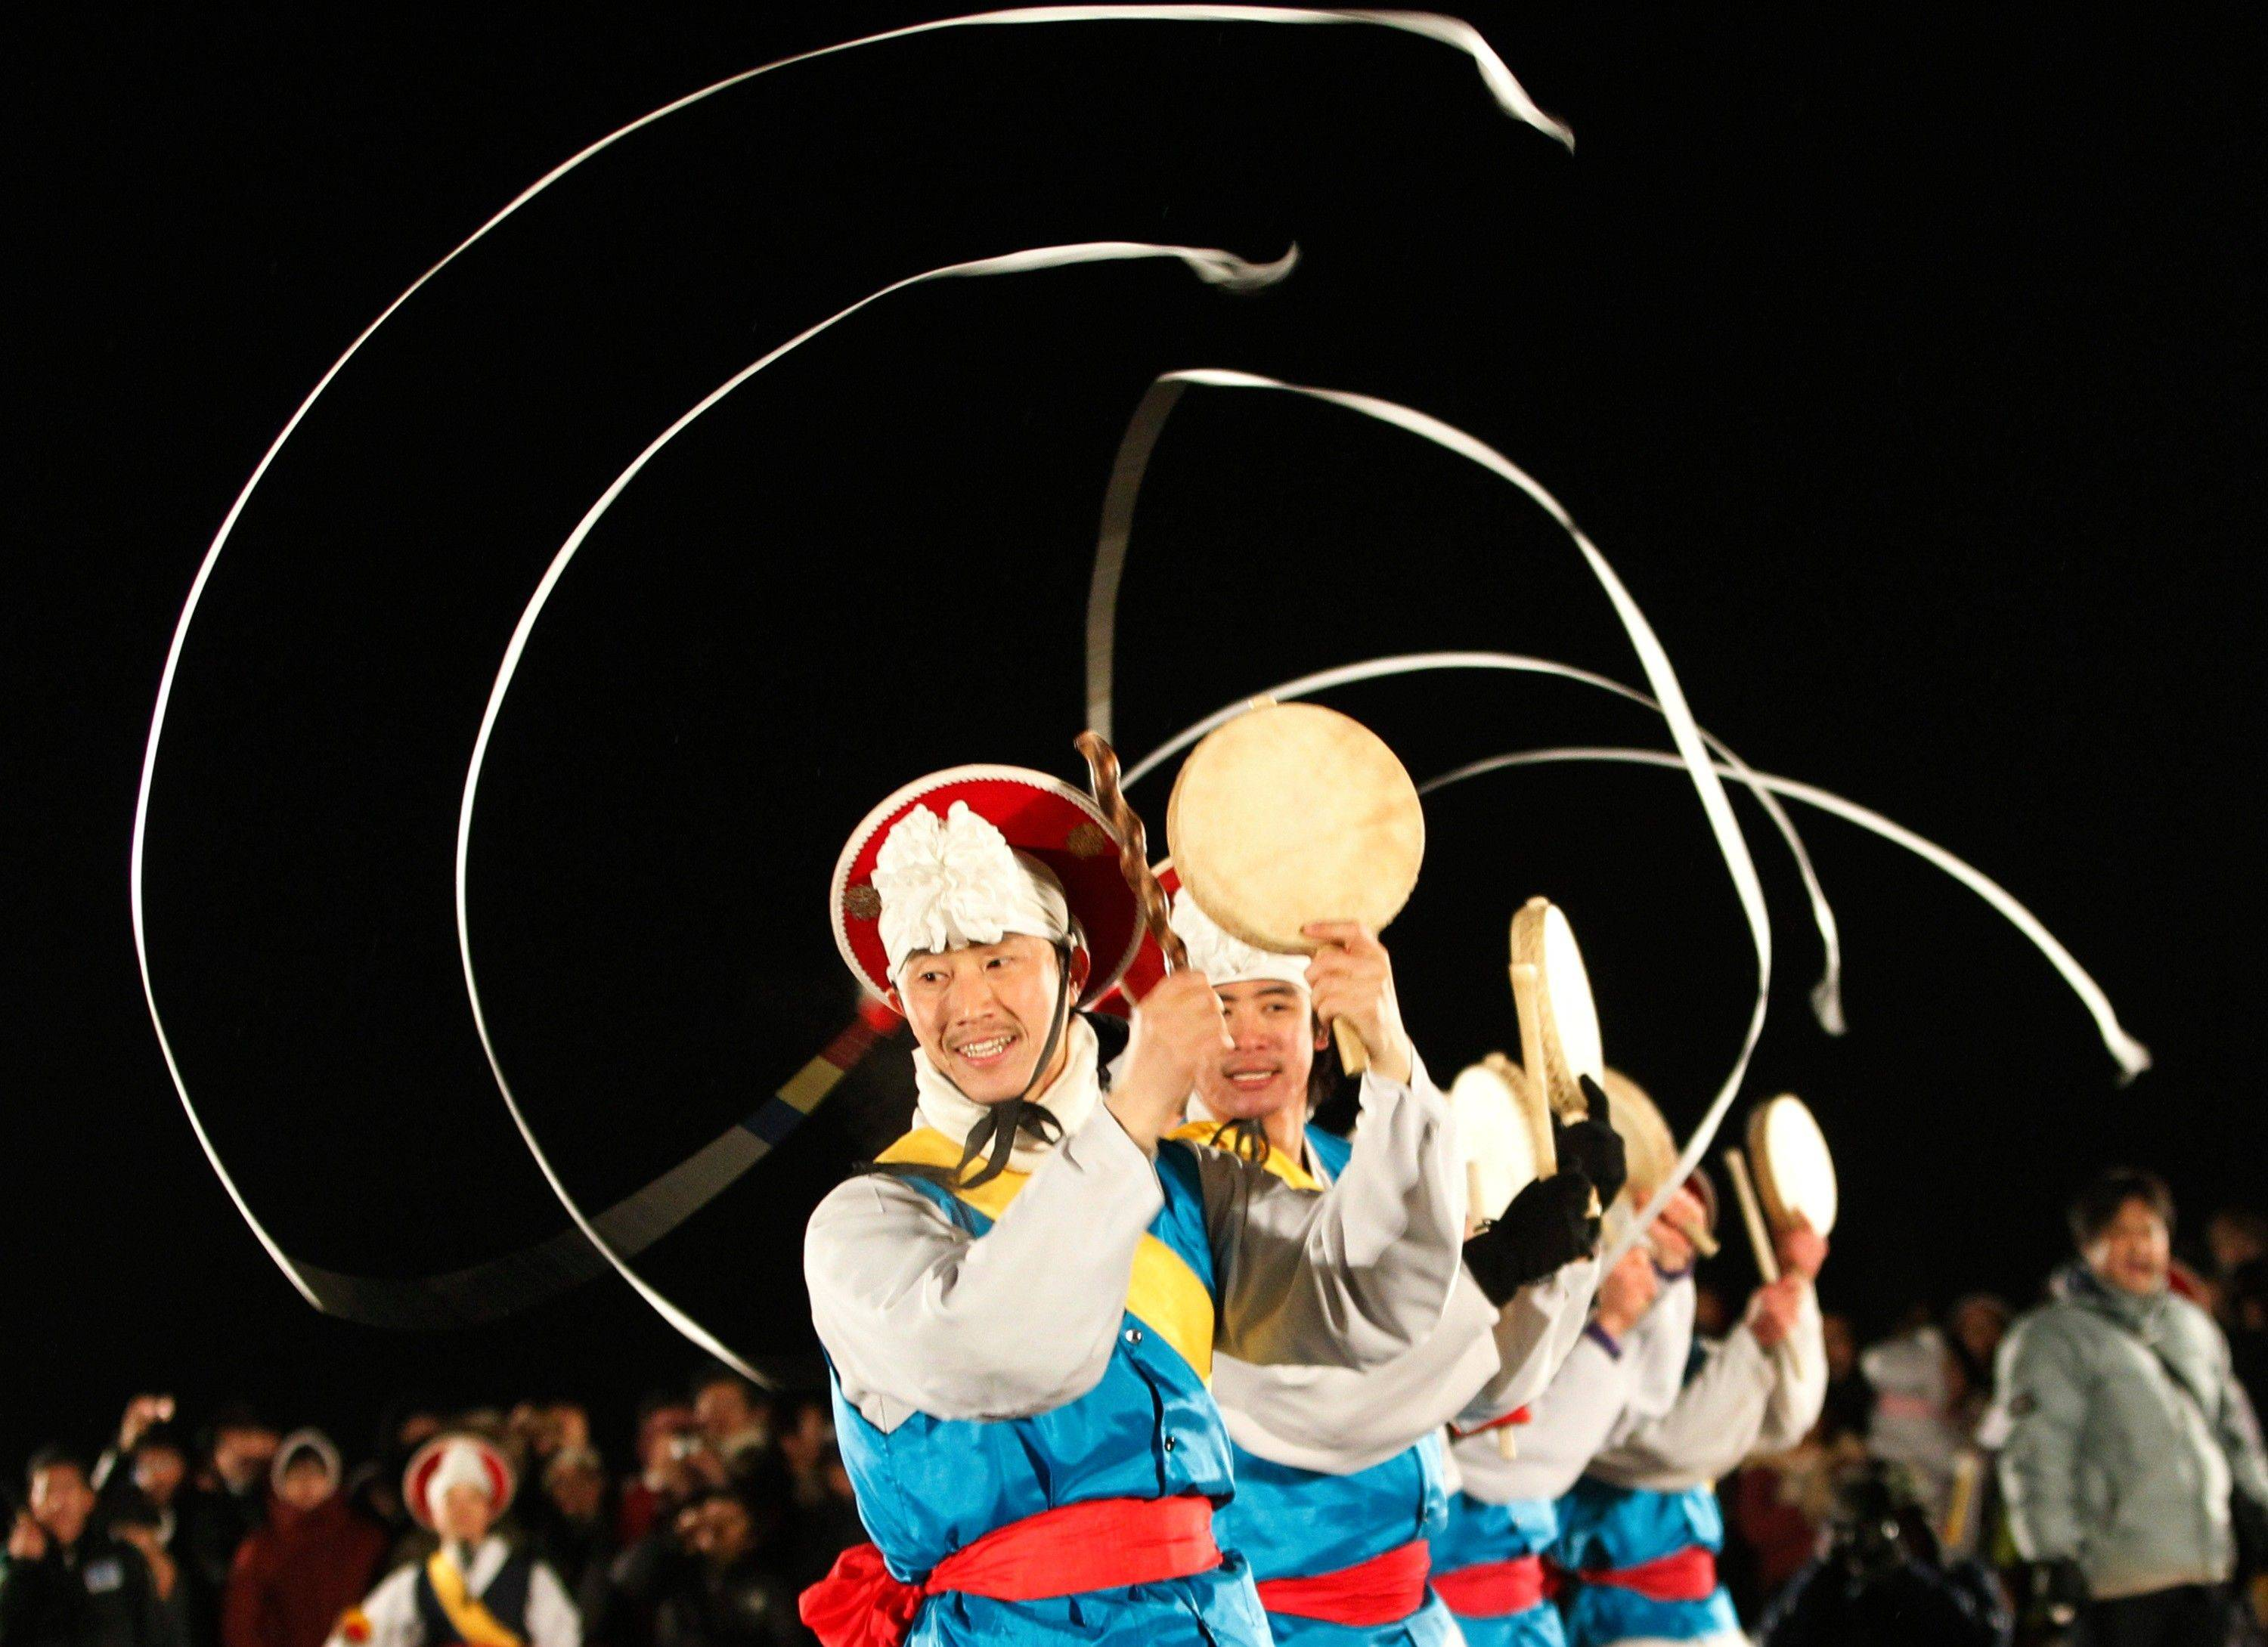 South Koreans in traditional costumes perform to celebrate the New Year near the border village of Panmunjom (DMZ) that separates the two Koreas since the Korean War, at Imjingak Pavilion in Paju, South Korea, Sunday, Jan. 1, 2012.